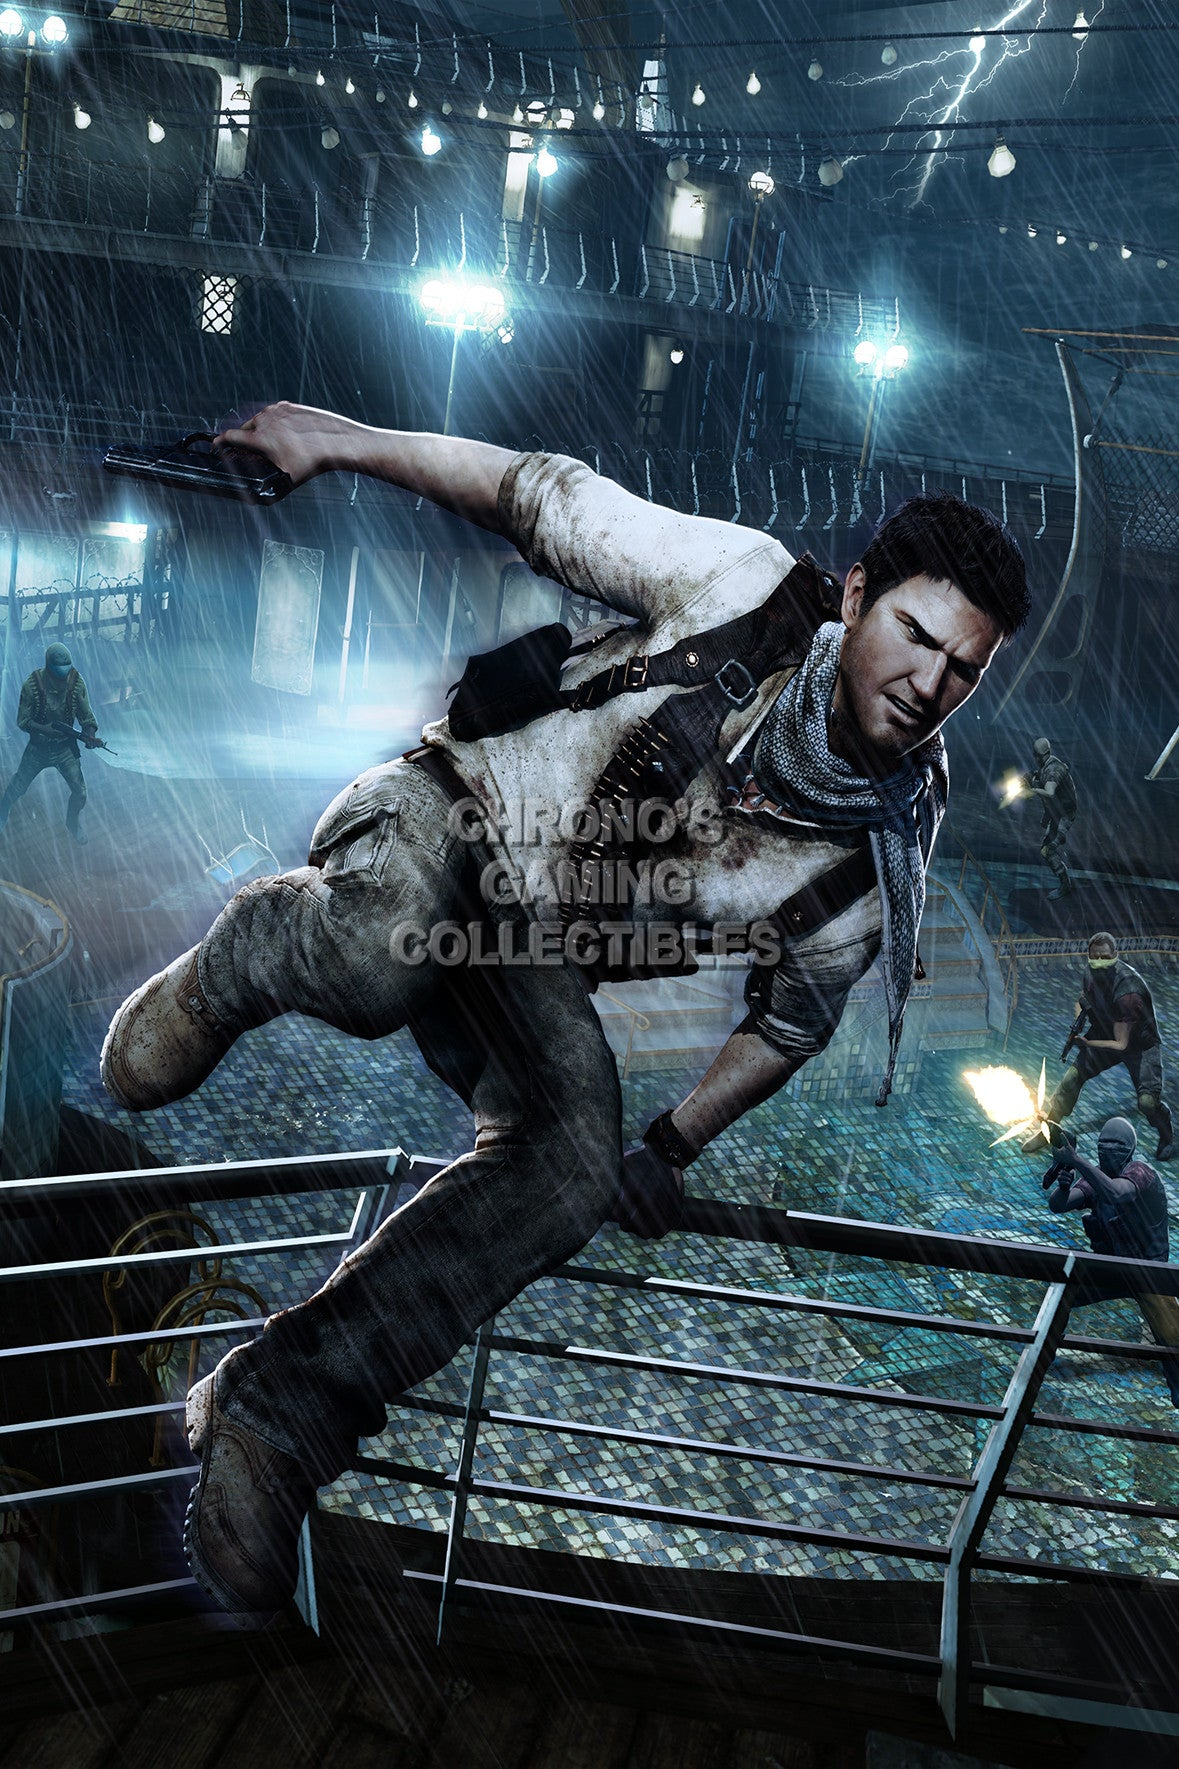 Uncharted Video Games Poster Cgcposters